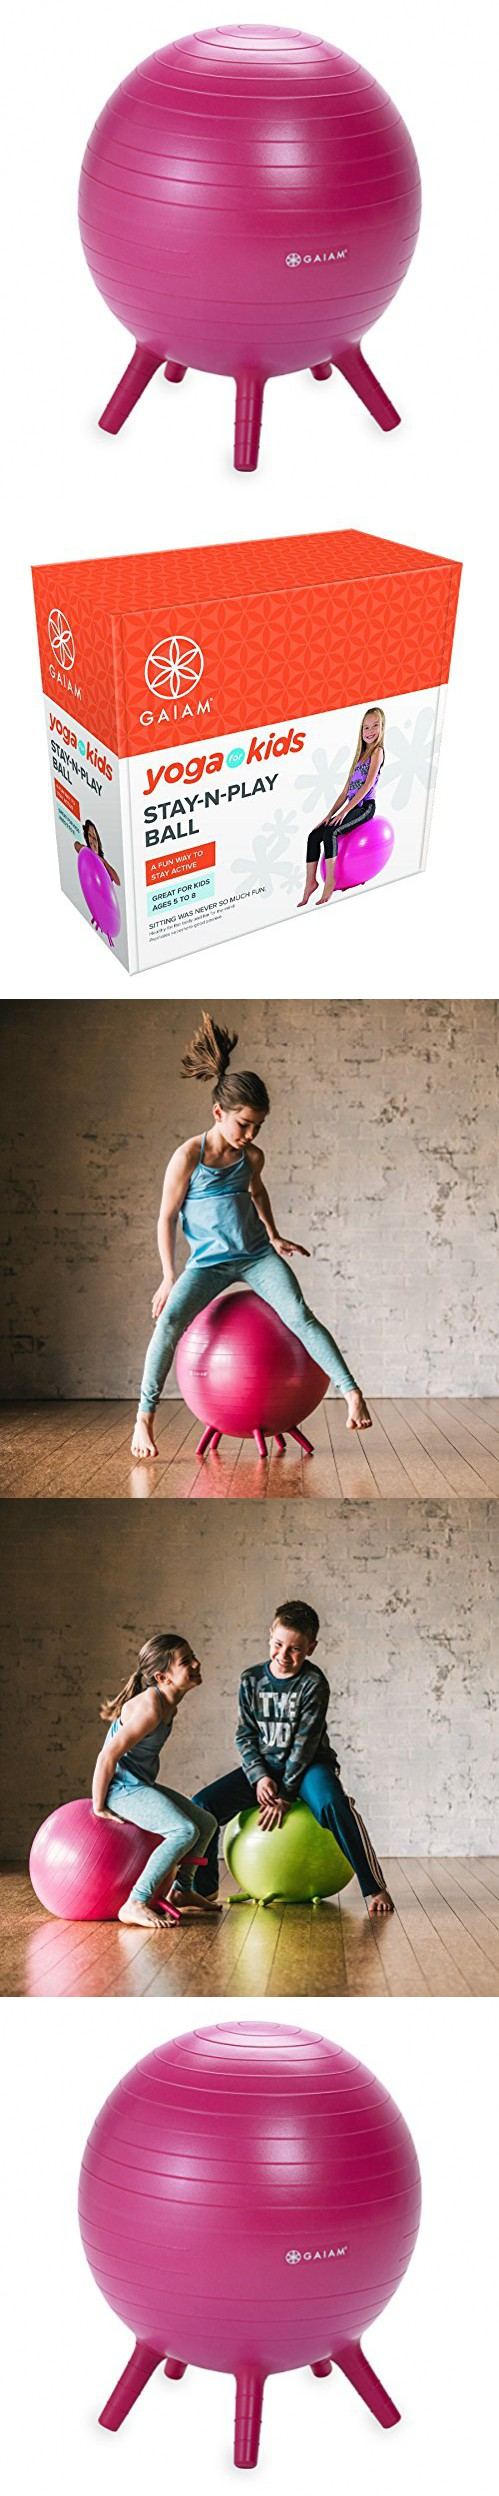 Pink ball chairs - Gaiam Kids Stay N Play Balance Ball Pink Ball Chair